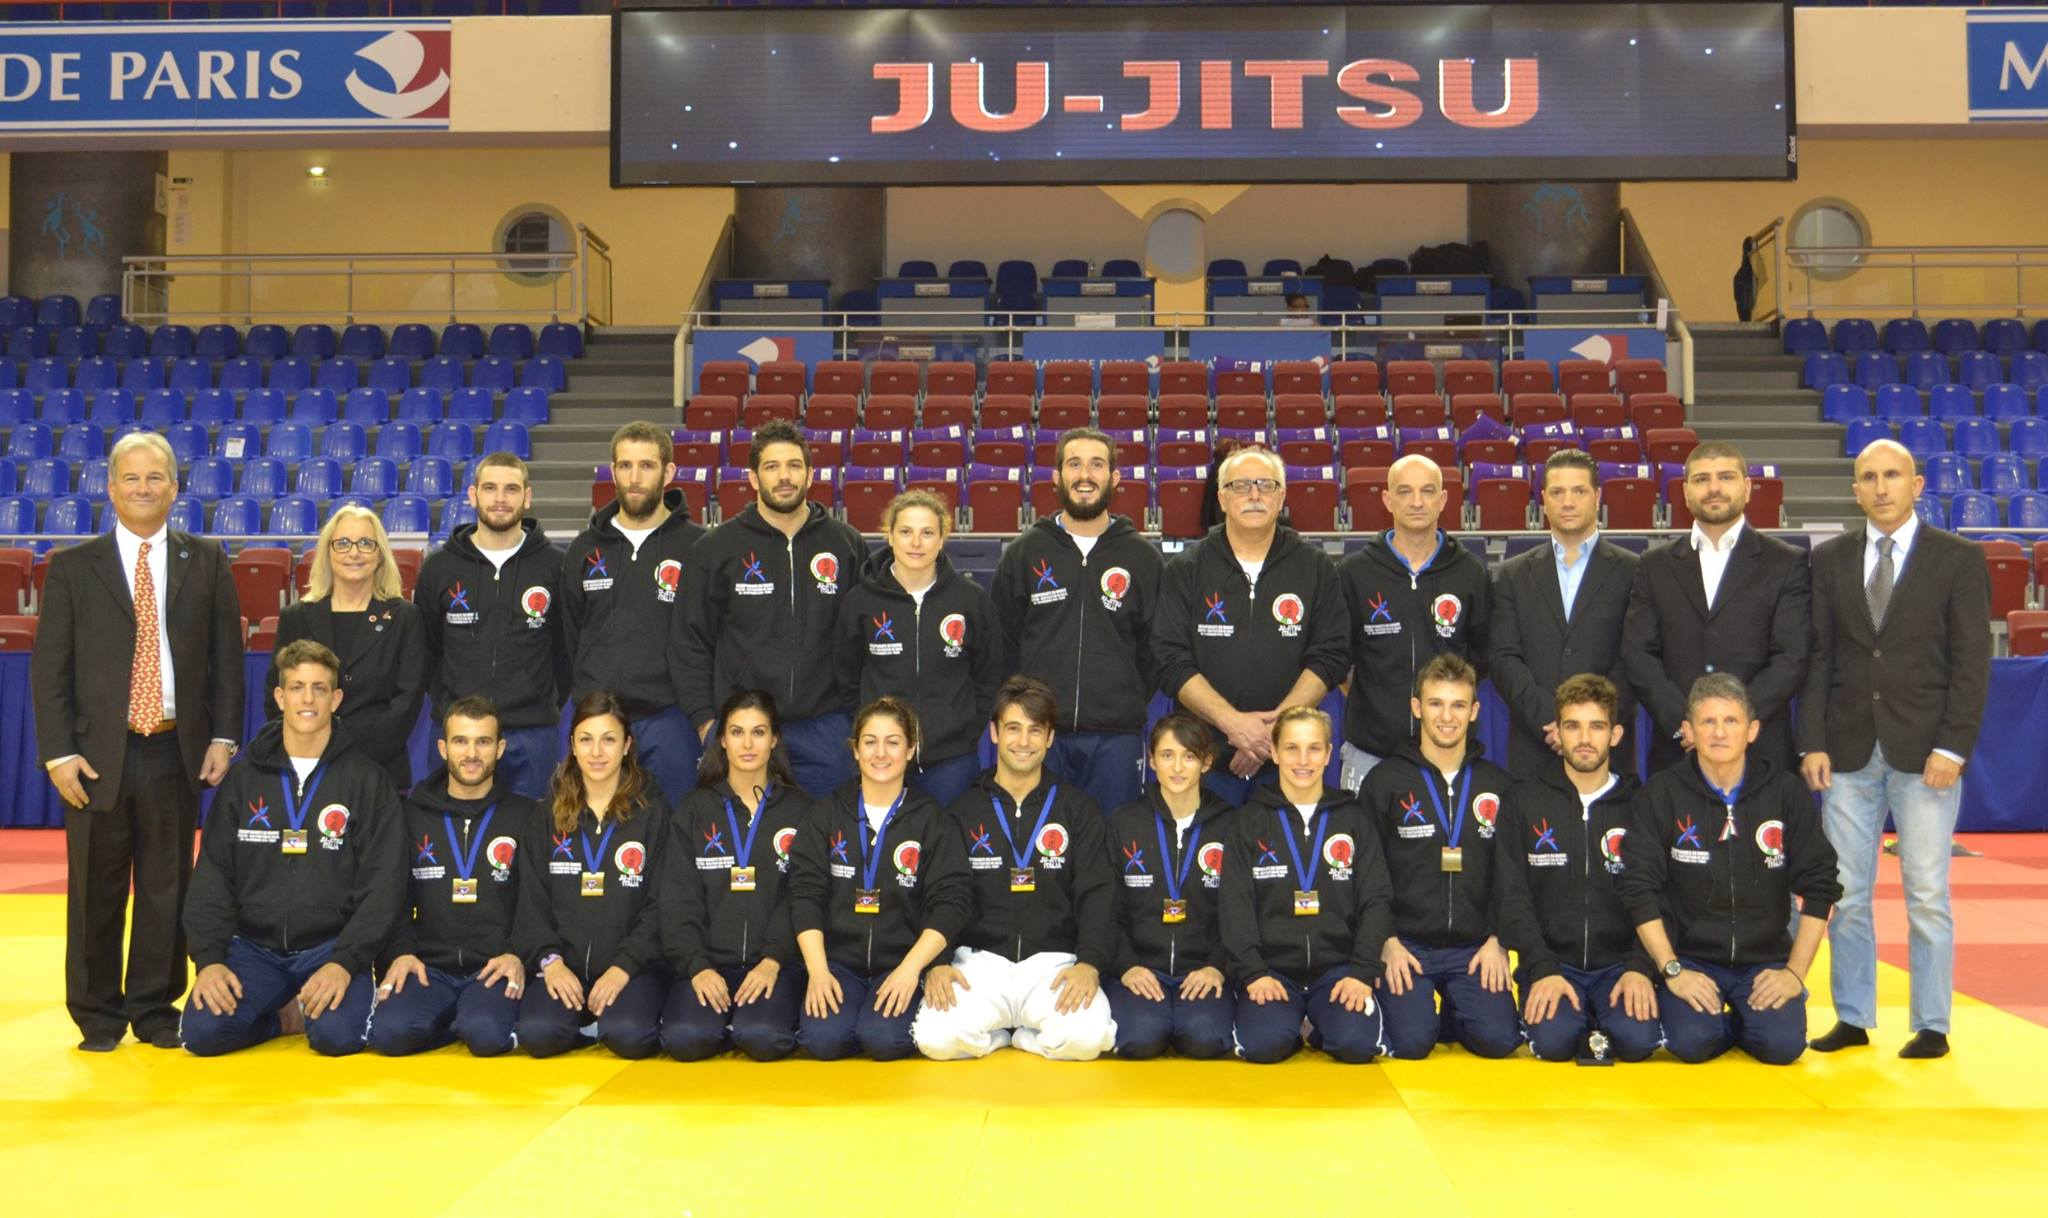 team italia jujutsu paris 2014